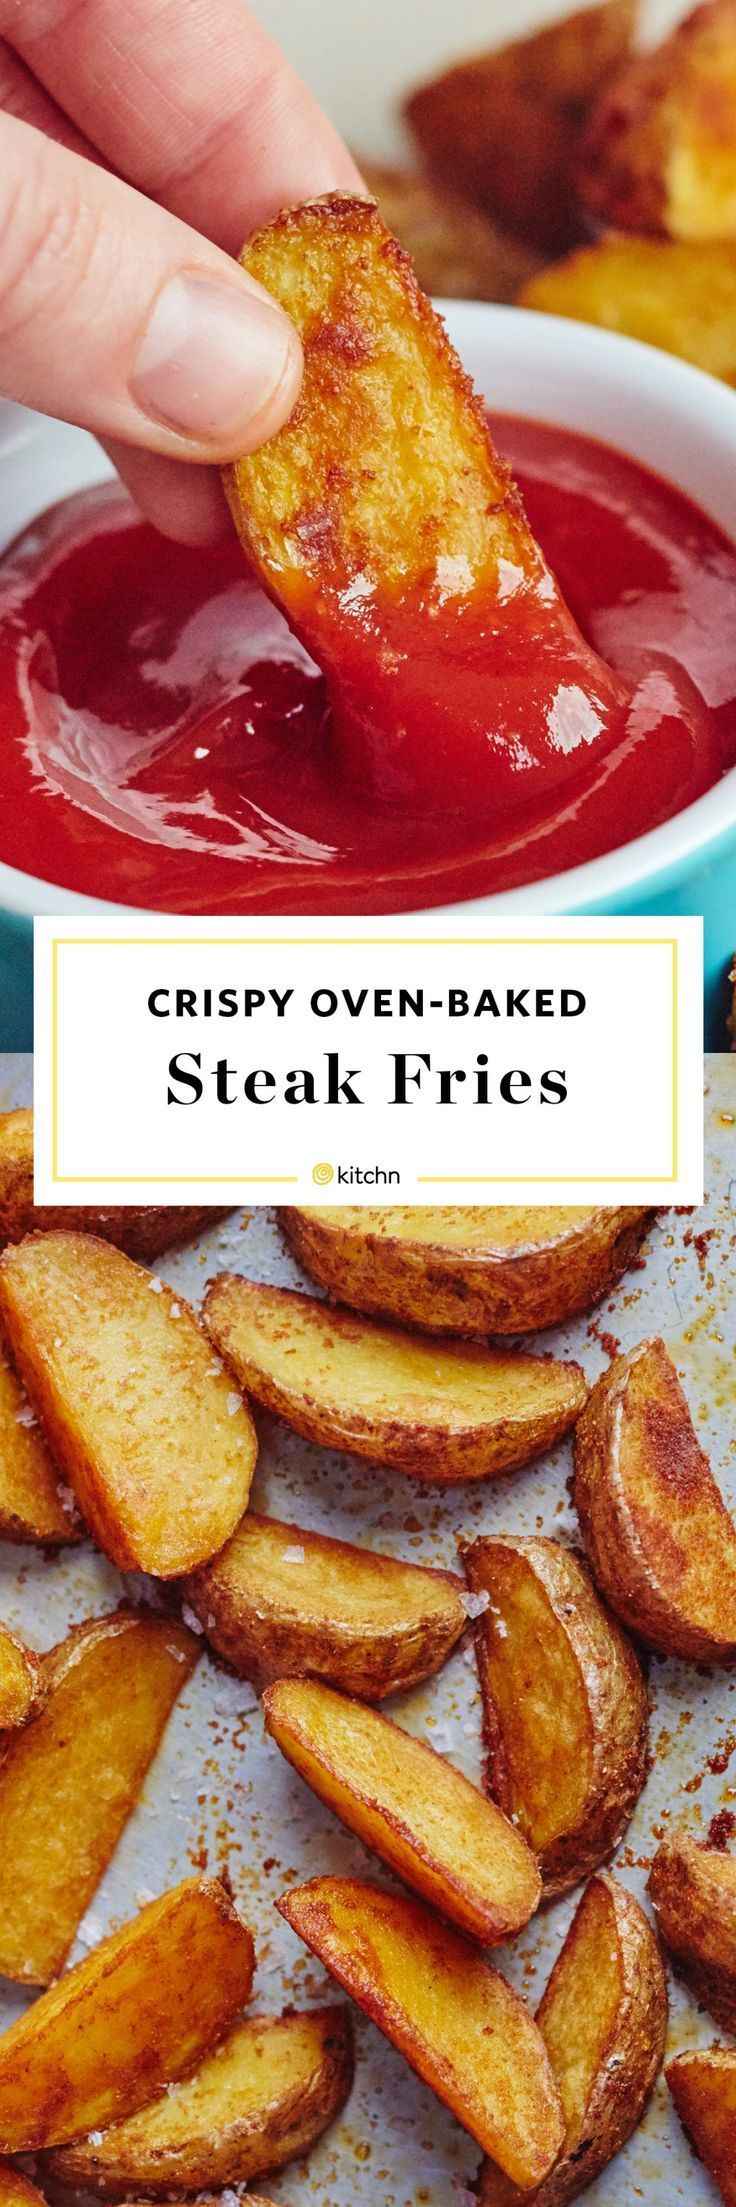 Steak Fries -- thicker than french fries, require just a little more finesse to get the ideal ratio of crispy outside to soft, creamy center... the best steak fries aren't fried, but are better off oven roasted..